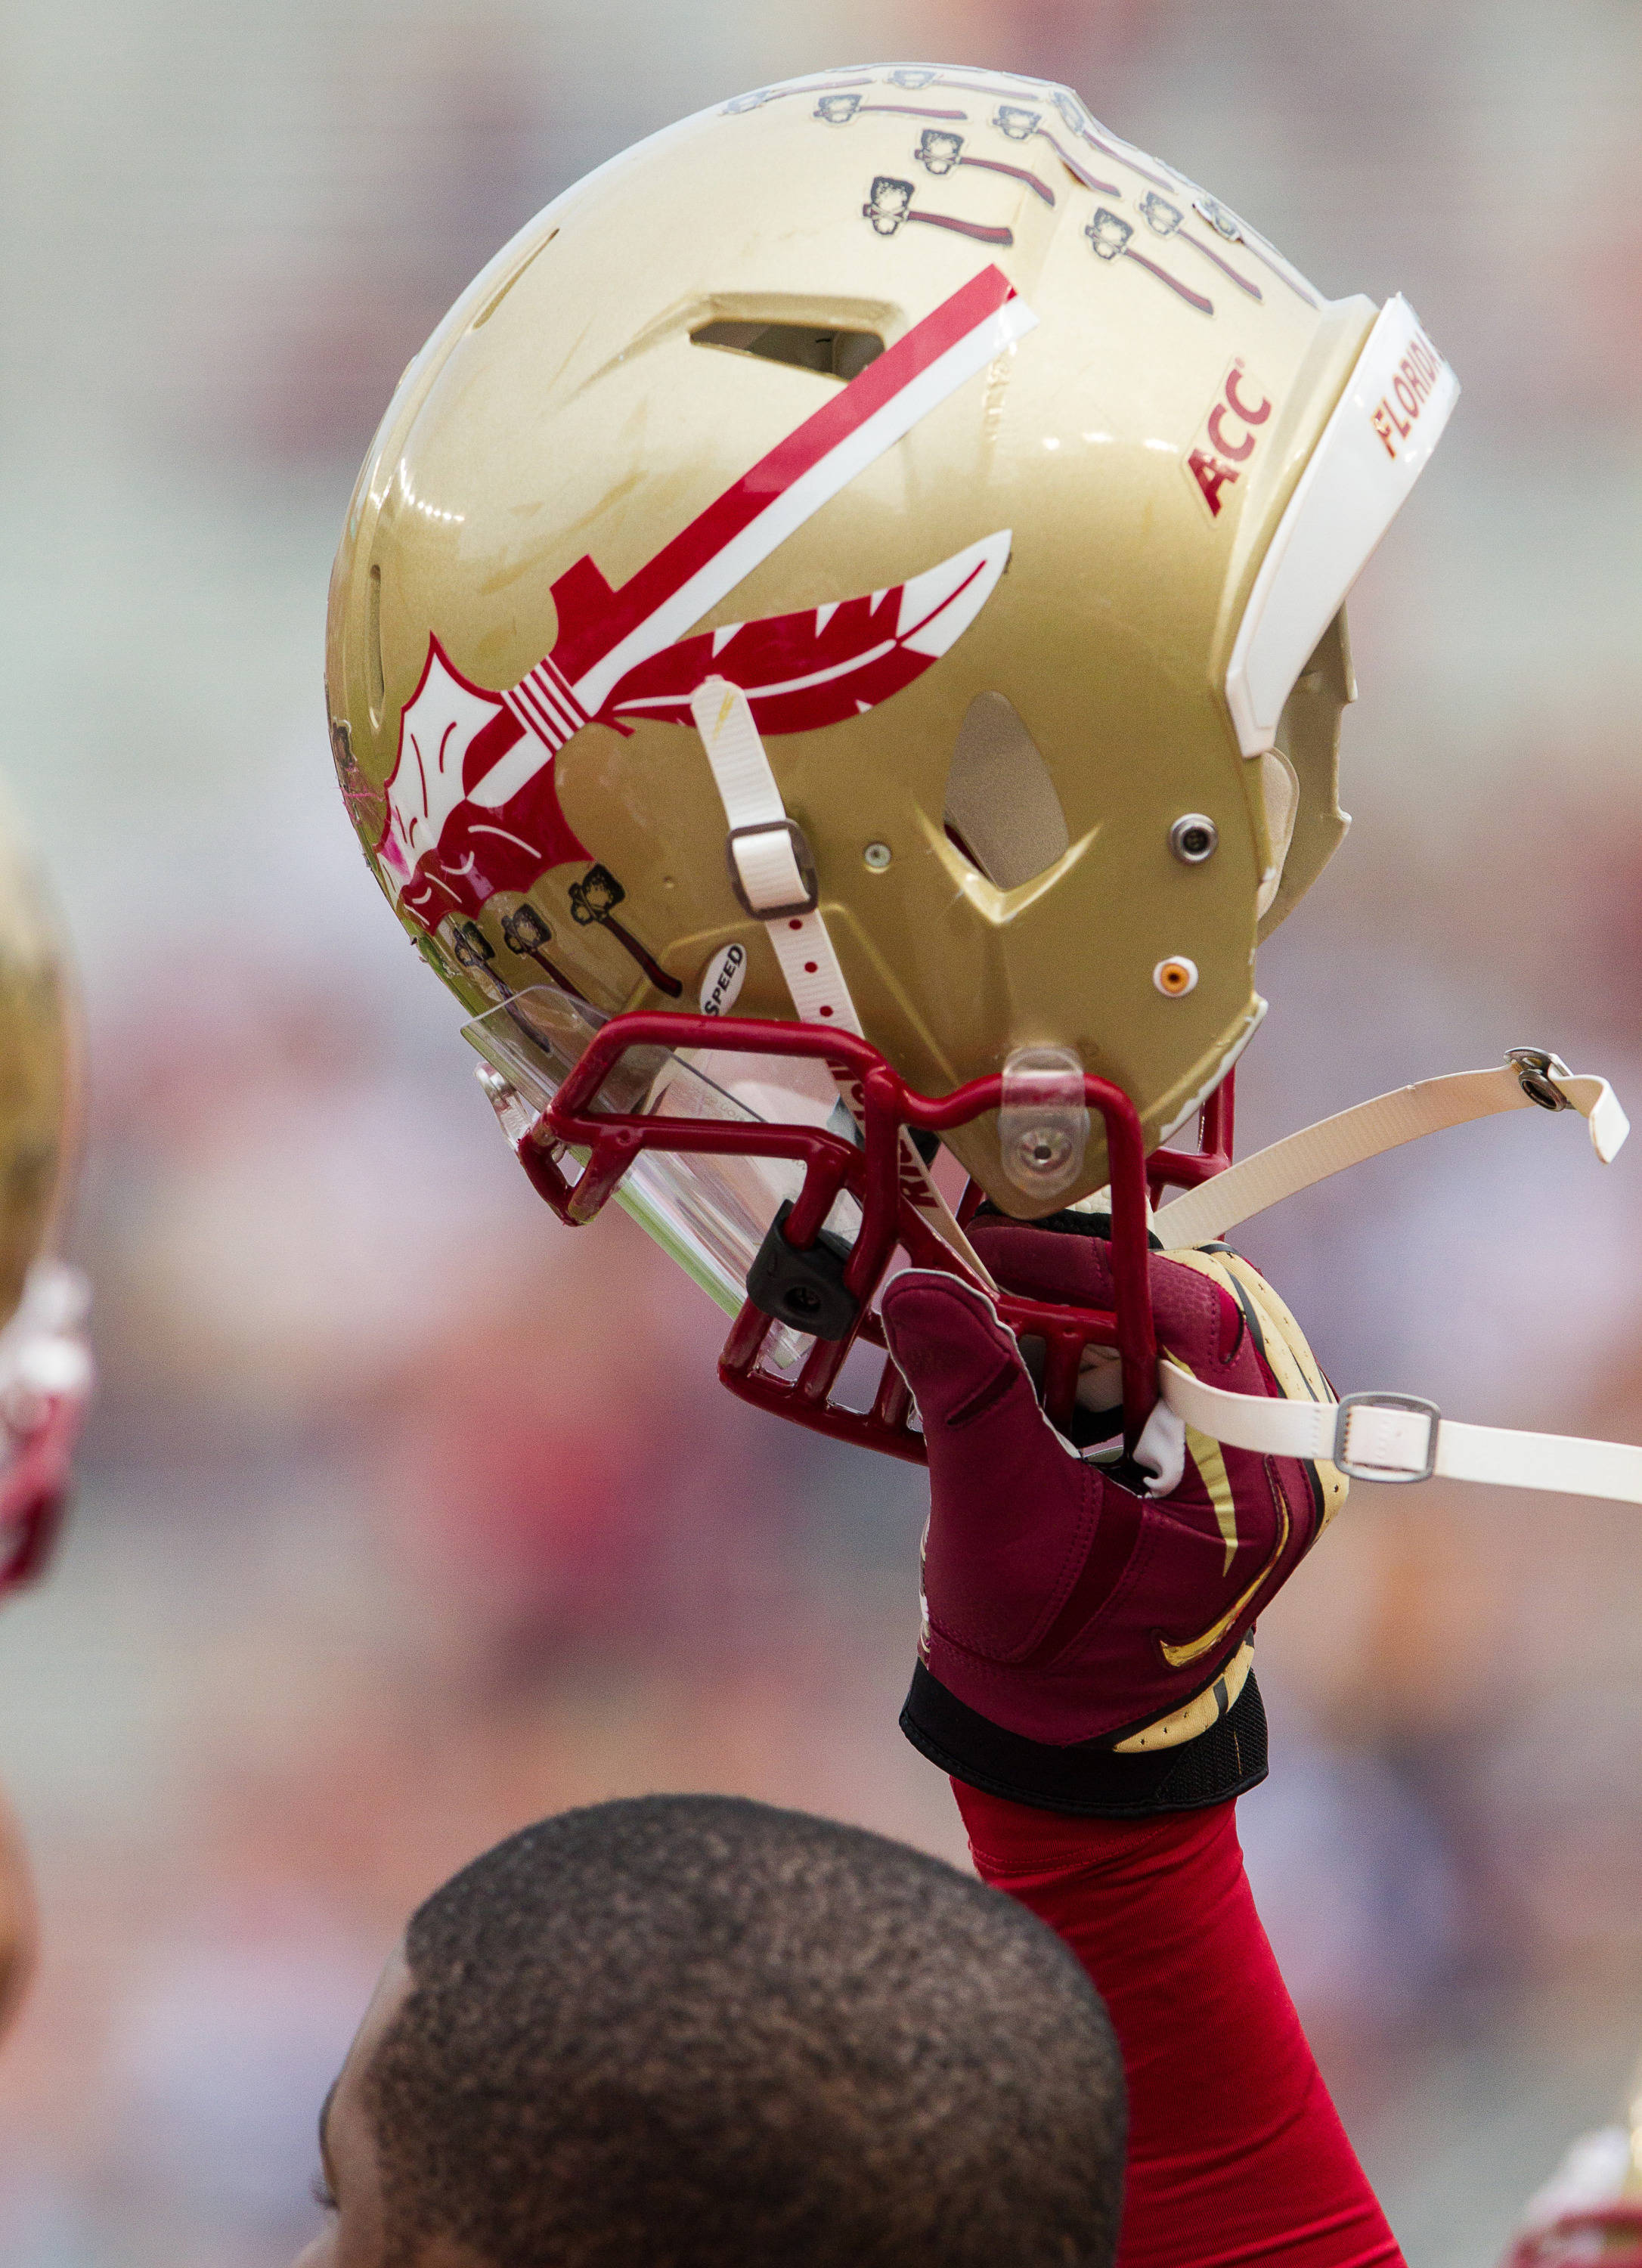 An FSU player holds his helmet in the air before FSU Football's 80-14 victory over Idaho in Tallahassee, Fla on Saturday, November 23, 2013. Photos by Mike Schwarz.